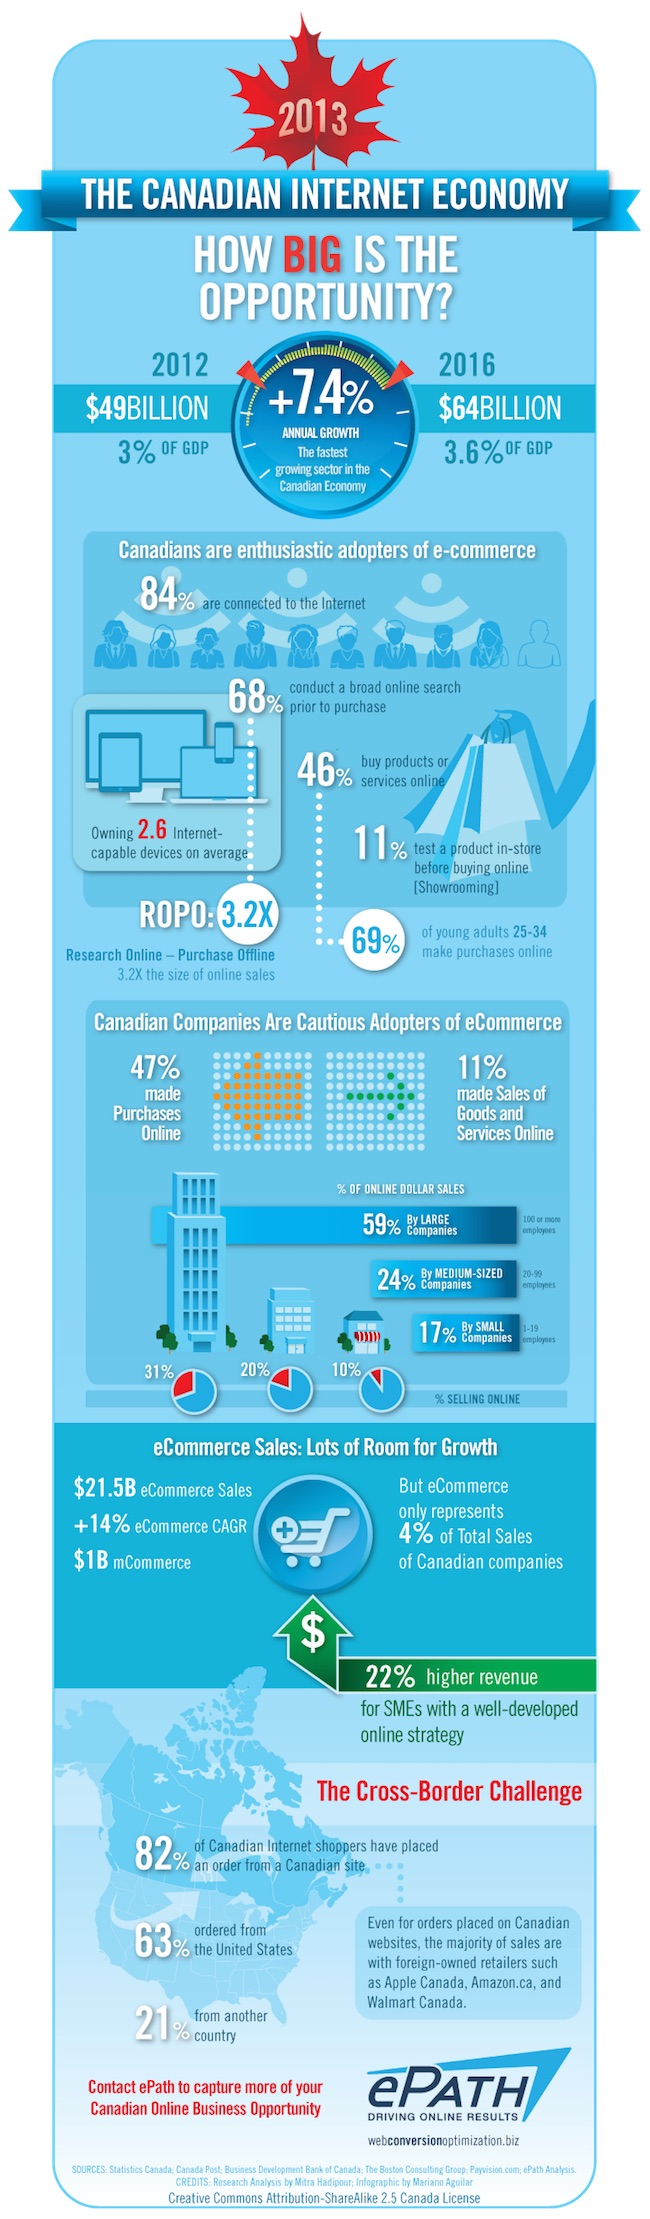 The Canadian Internet Economy |Infographic | ePath eCommerce Consultants